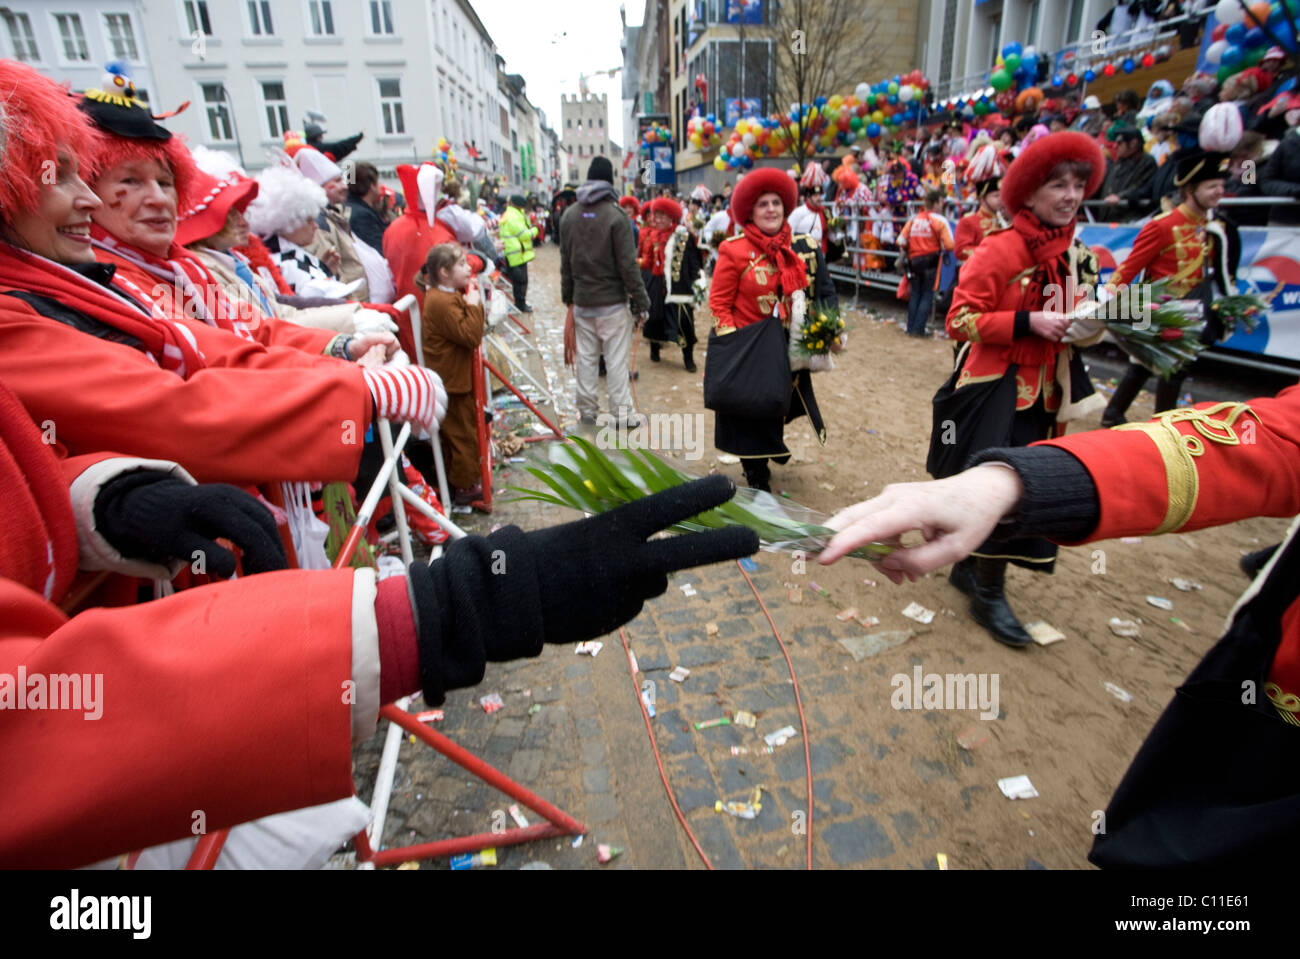 Sweets, chocolates and flowers are given to the crowd during the carnival parade in the streets of Cologne (Germany) - Stock Image